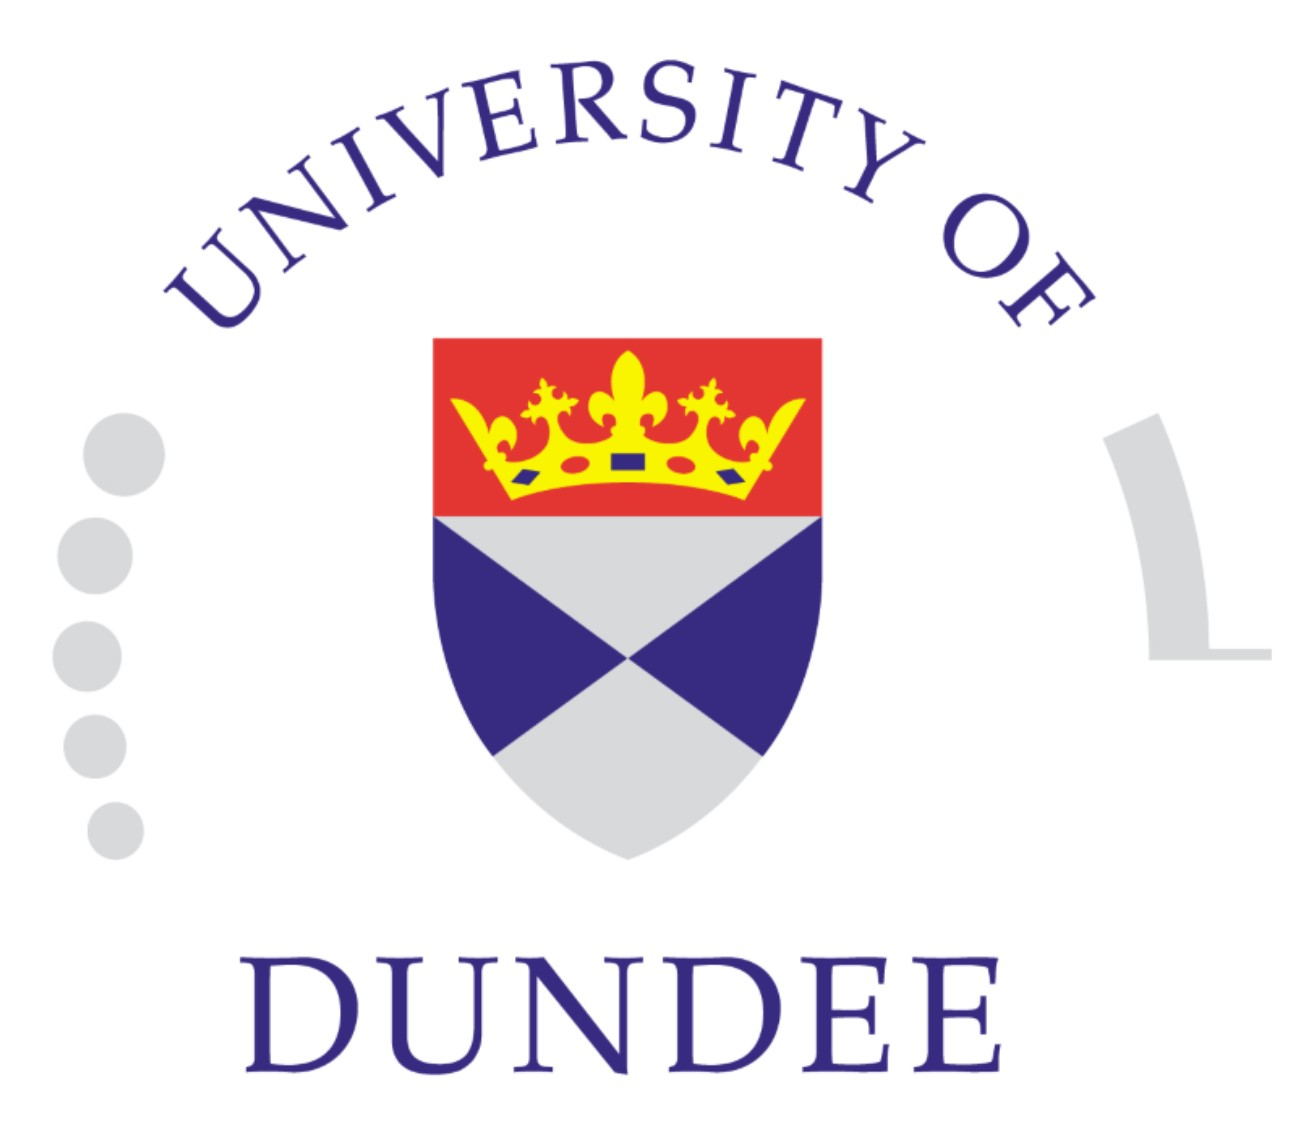 """Reach"""" At Dundee University for Medicine, Dentistry and Law"""